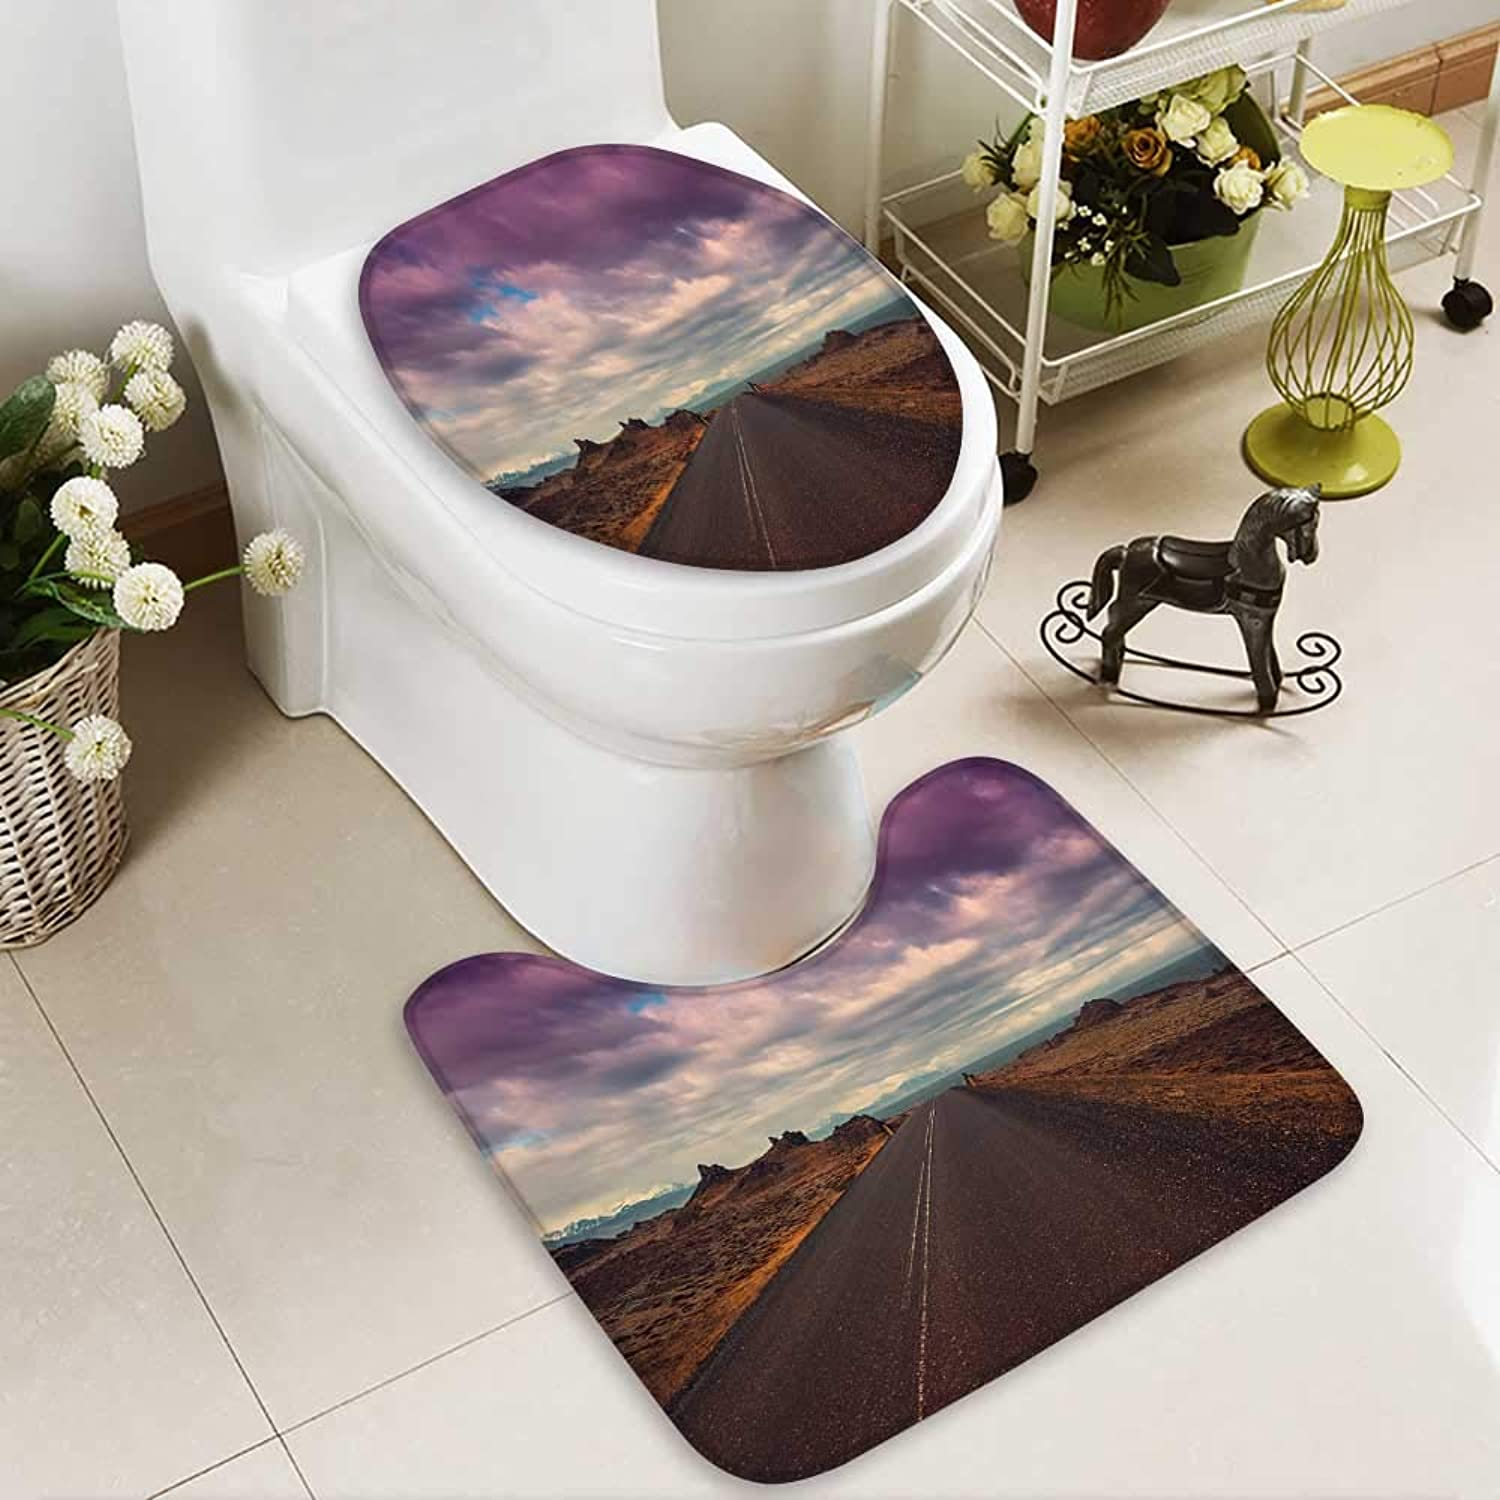 Aolankaili Cushion Non-Slip Toilet Mat Road Nature Background Soft Non-Slip Water